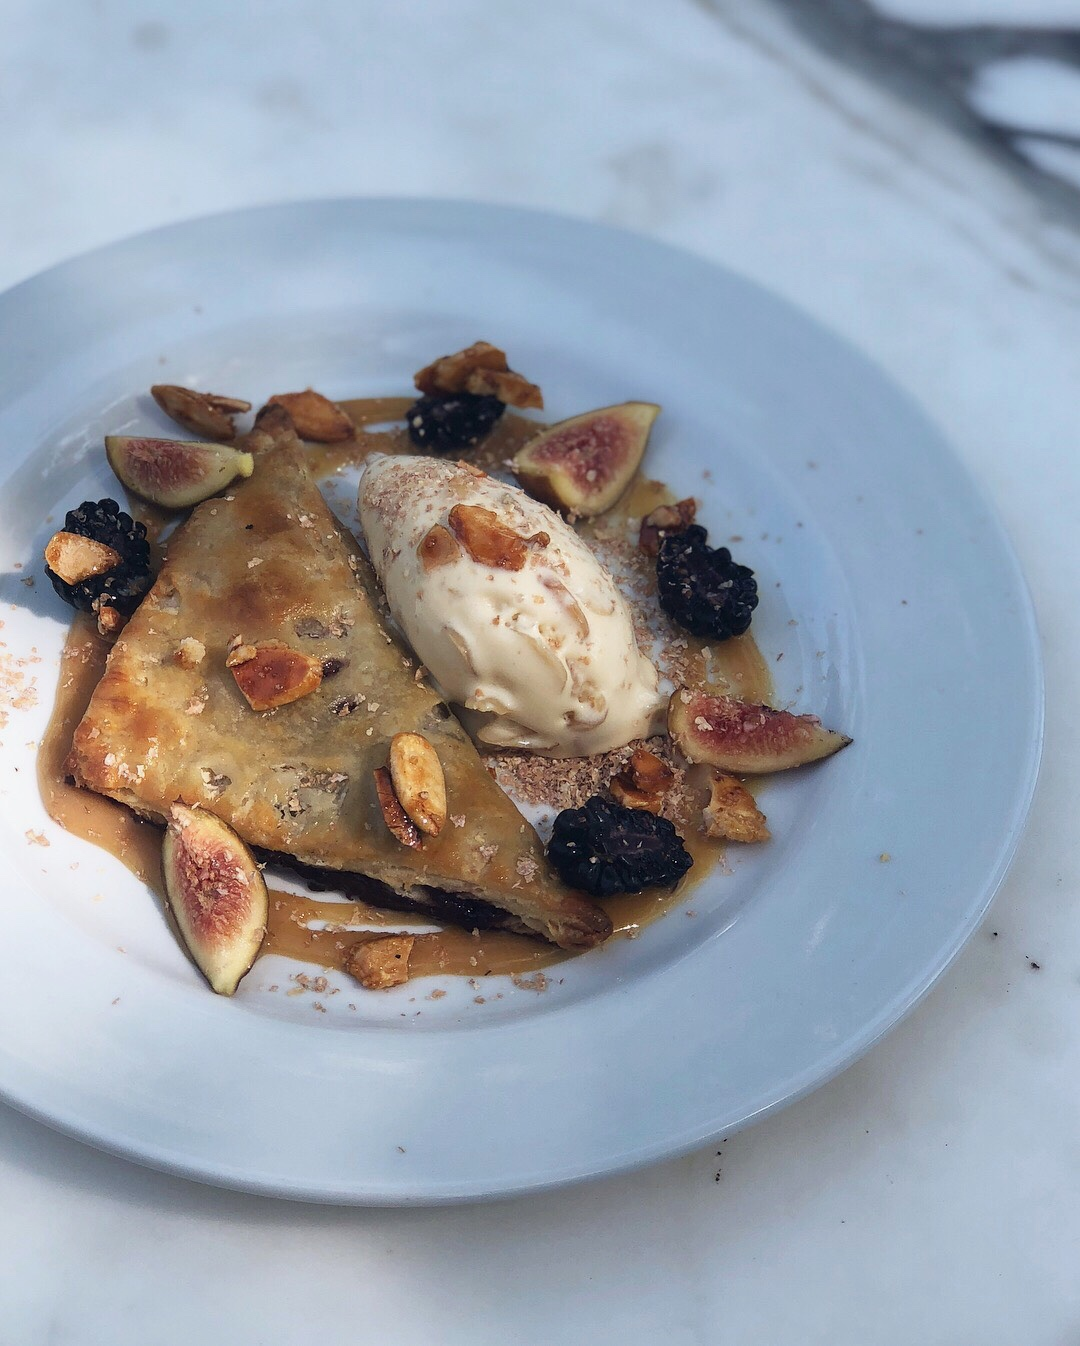 blackberry handpie • toasted almond ice cream • caramel almonds • burnt soy honey • blackberries • figs • bran flakes